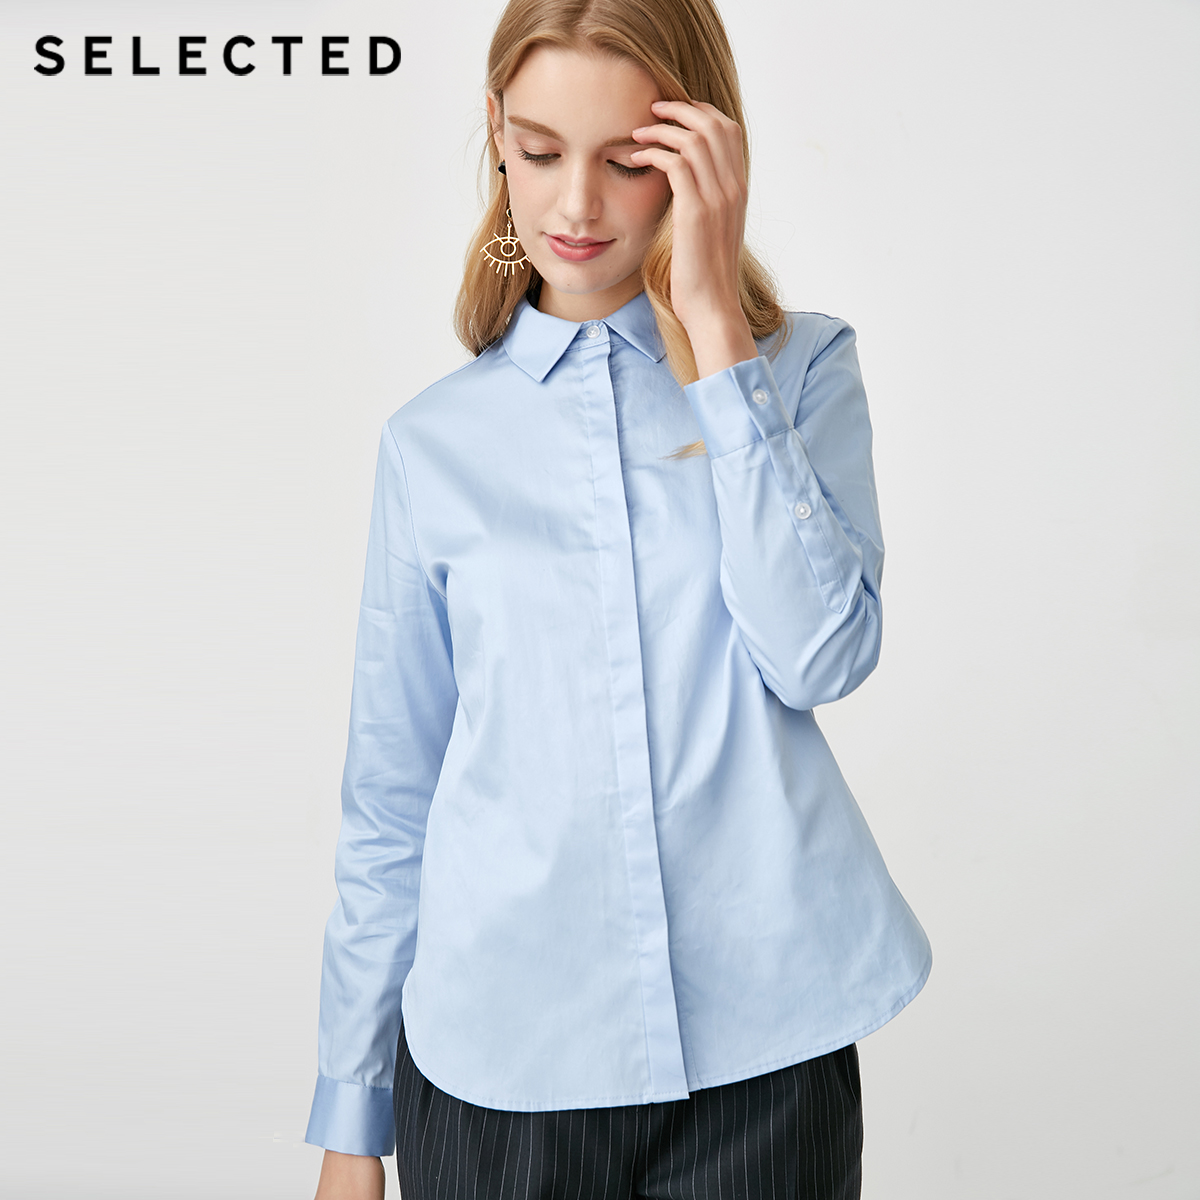 SELECTED Women s 100 Cotton Concealed Front Shirt S 418405516